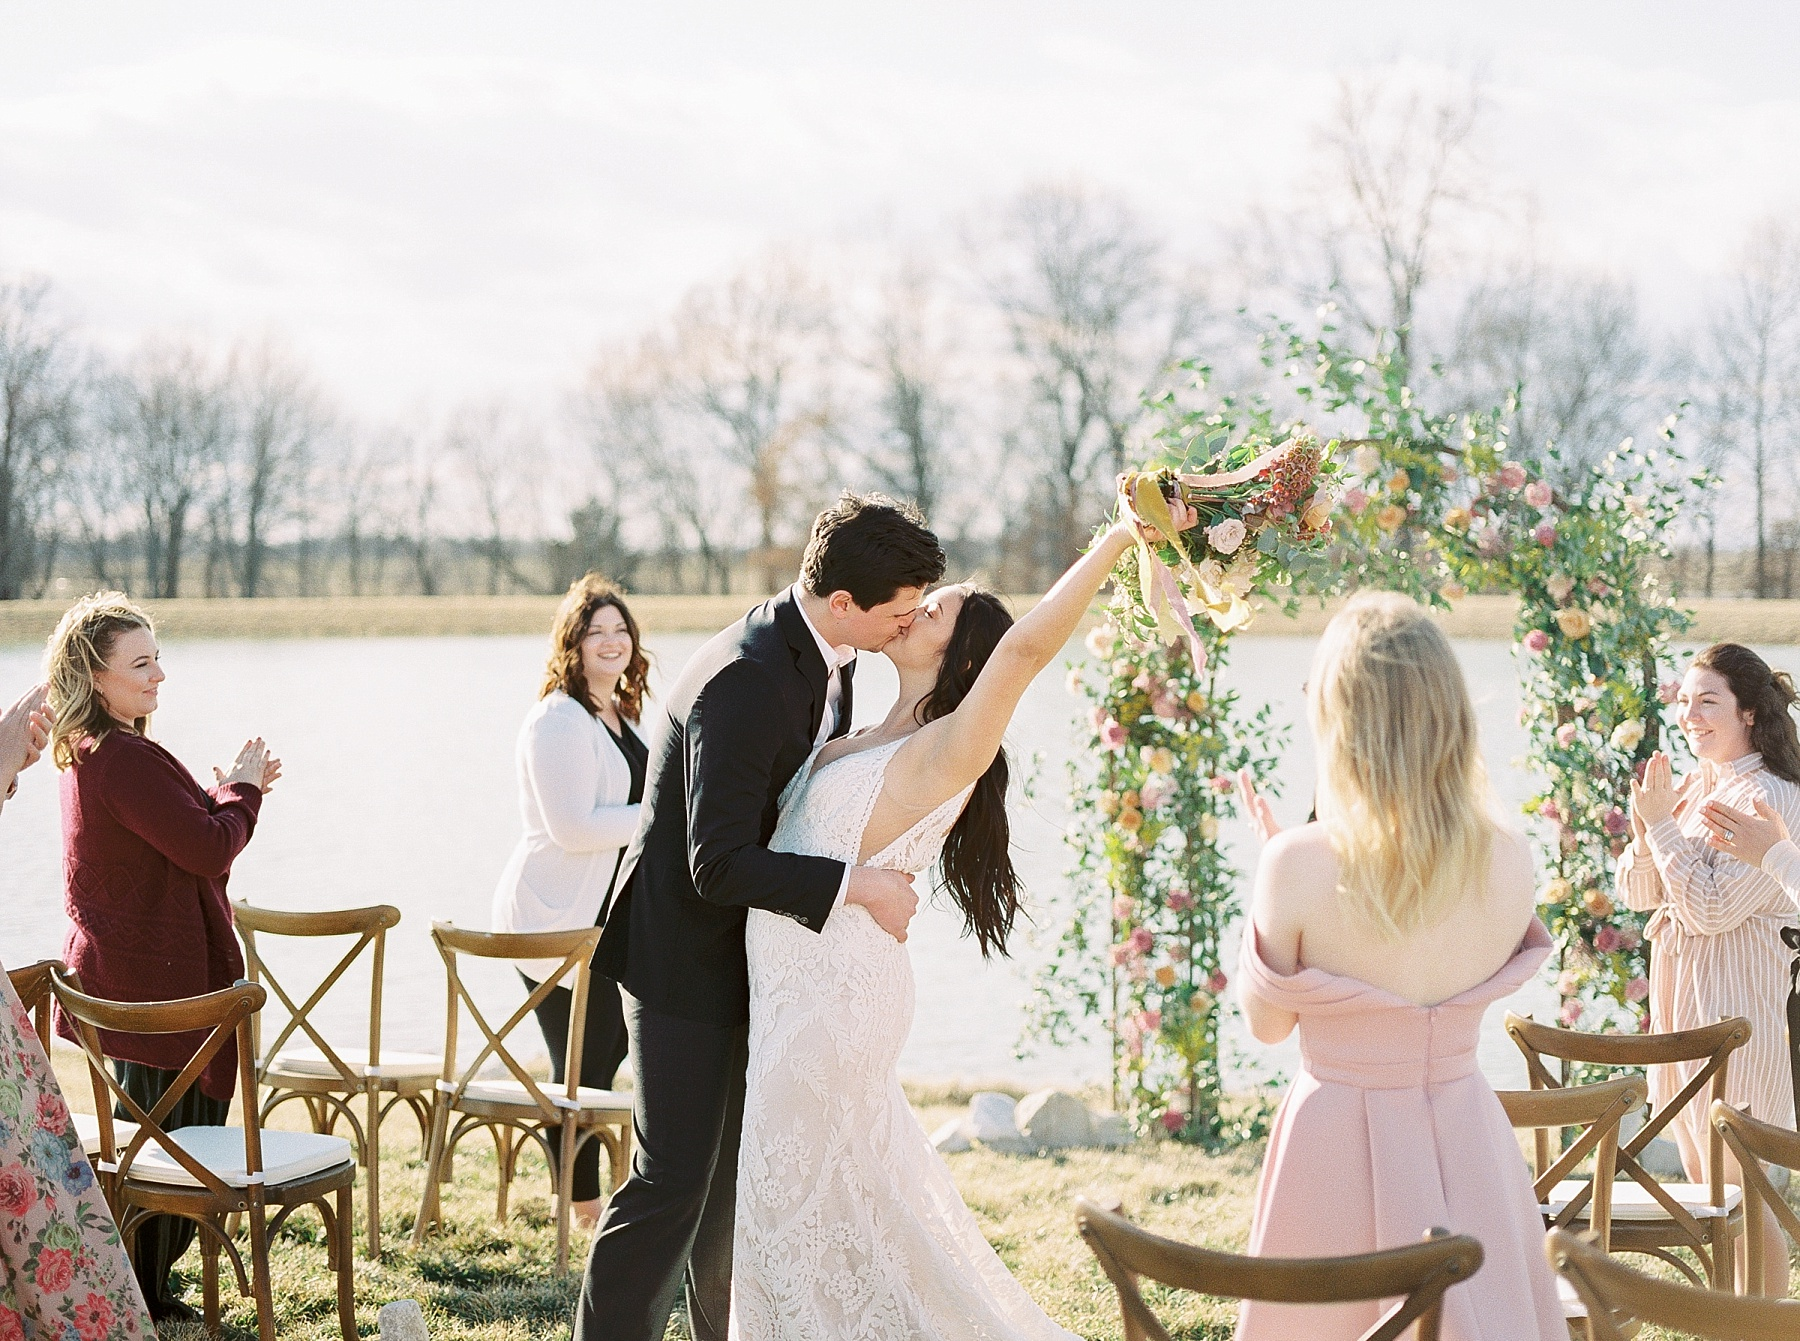 Lakeside Sunset Wedding with Magnificent Abundance of Blooms at Emerson Fields by Kelsi Kliethermes Photography Best Missouri and Maui Wedding Photographer_0011.jpg